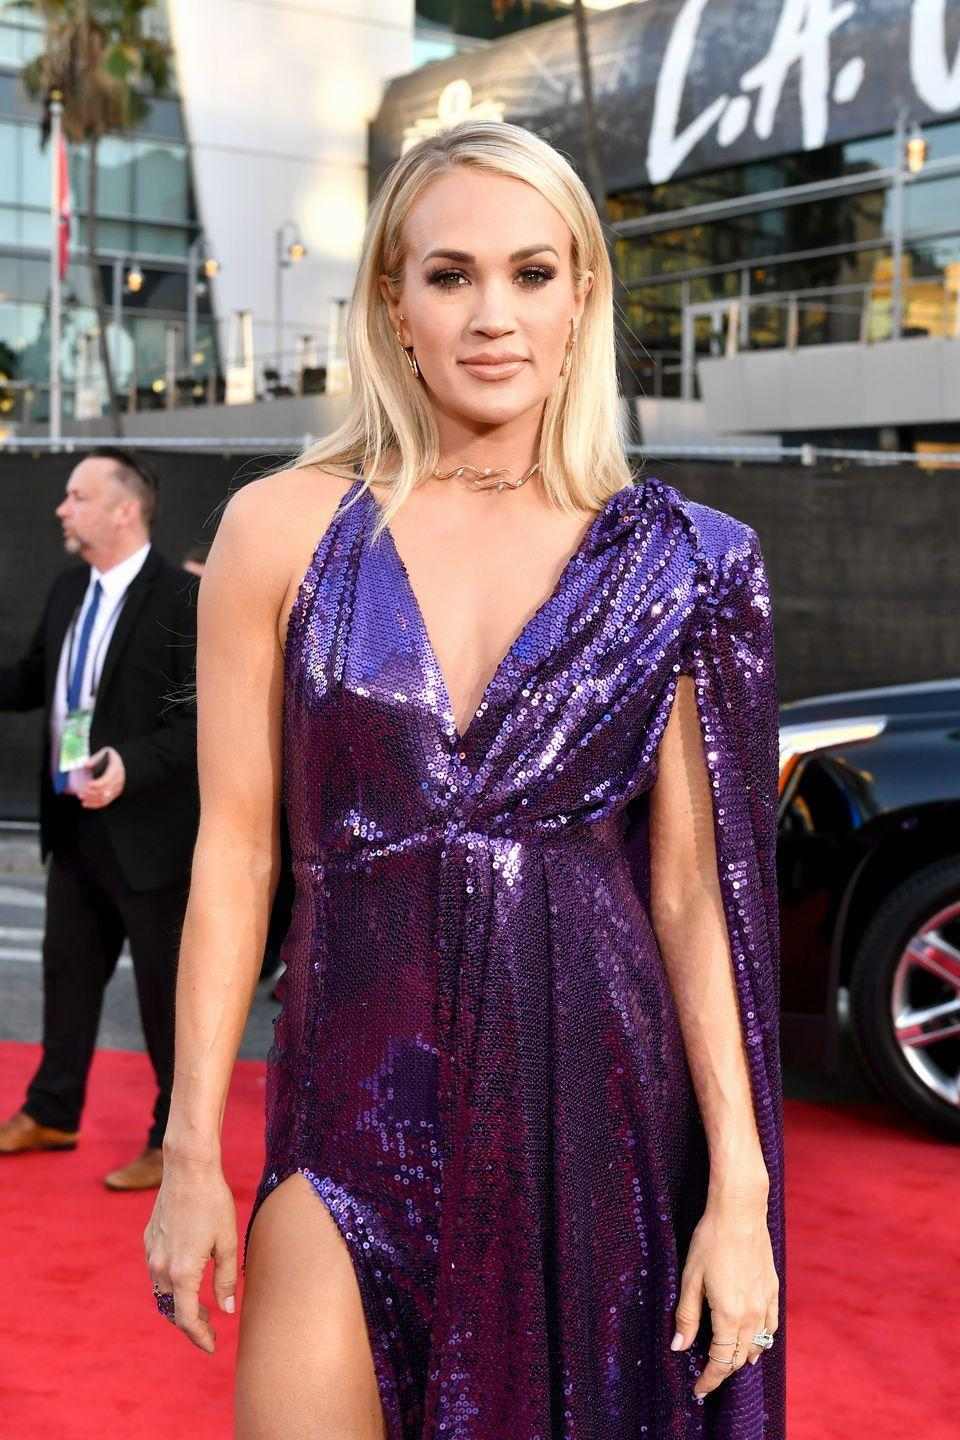 <p>Carrie Underwood ain't in Checotah anymore. The winner of the fourth season of <em>American Idol</em> put country music on the forefront on <em>Idol. </em>She's sold the most records of any <em>Idol </em>contestant; she's racked up seven Grammy Awards and 14 Academy of Country Music Awards; <em>aaaaand</em> she's created CALIA by Carrie, a fitness clothing brand.</p>